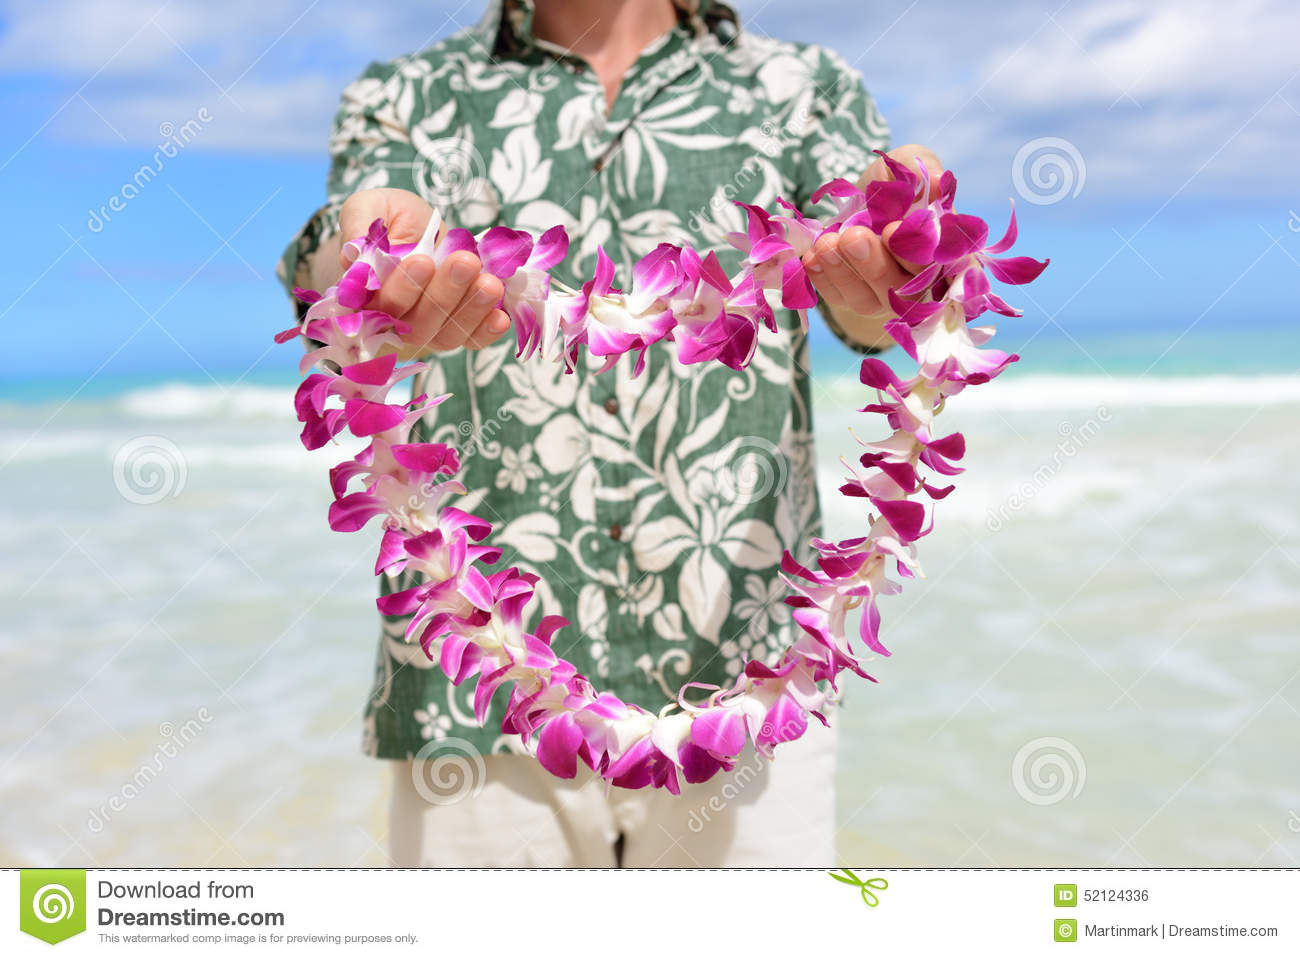 Hawaiian flowers stock photos royalty free images hawaii tradition giving a hawaiian flowers lei portrait of a male person holding a izmirmasajfo Choice Image